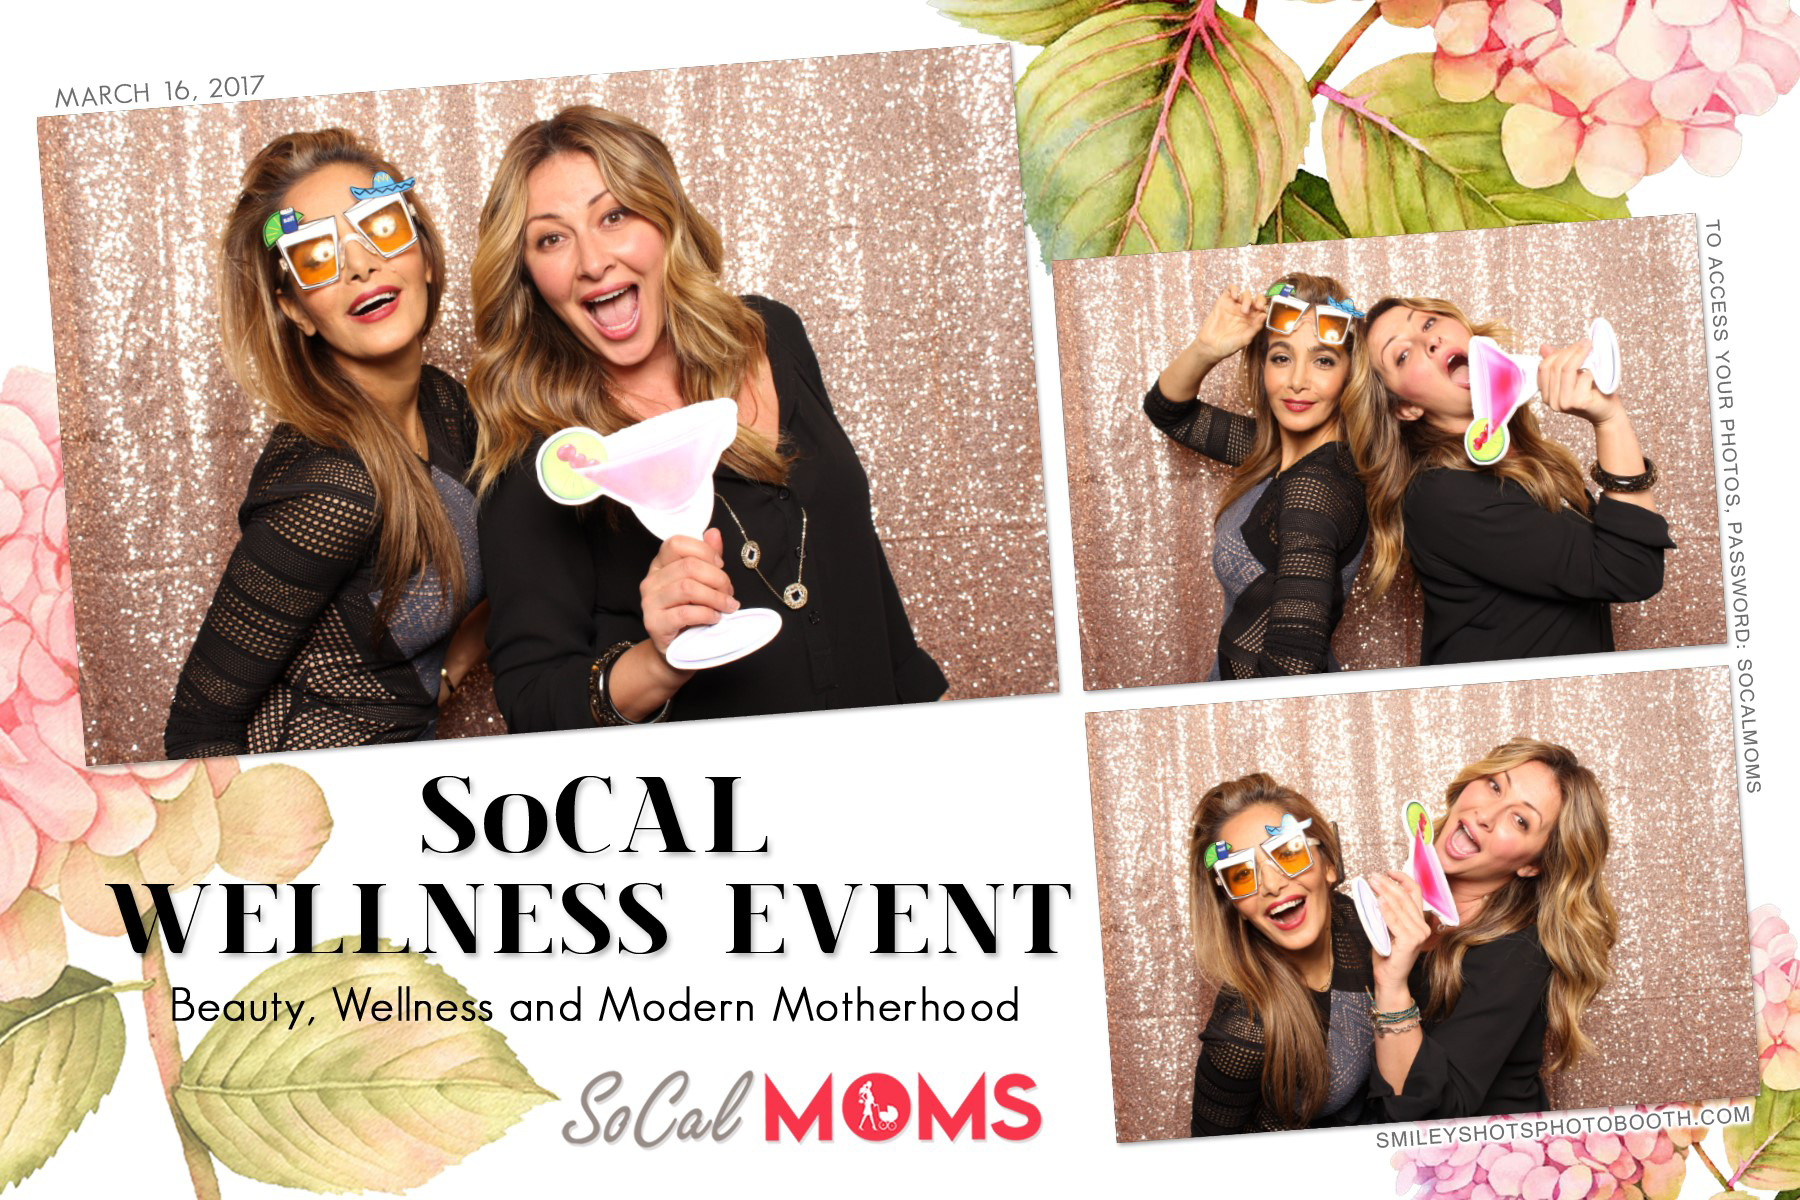 Socal Wellness Event Socal Moms Smiley Shots Photo Booth Photobooth (15).png